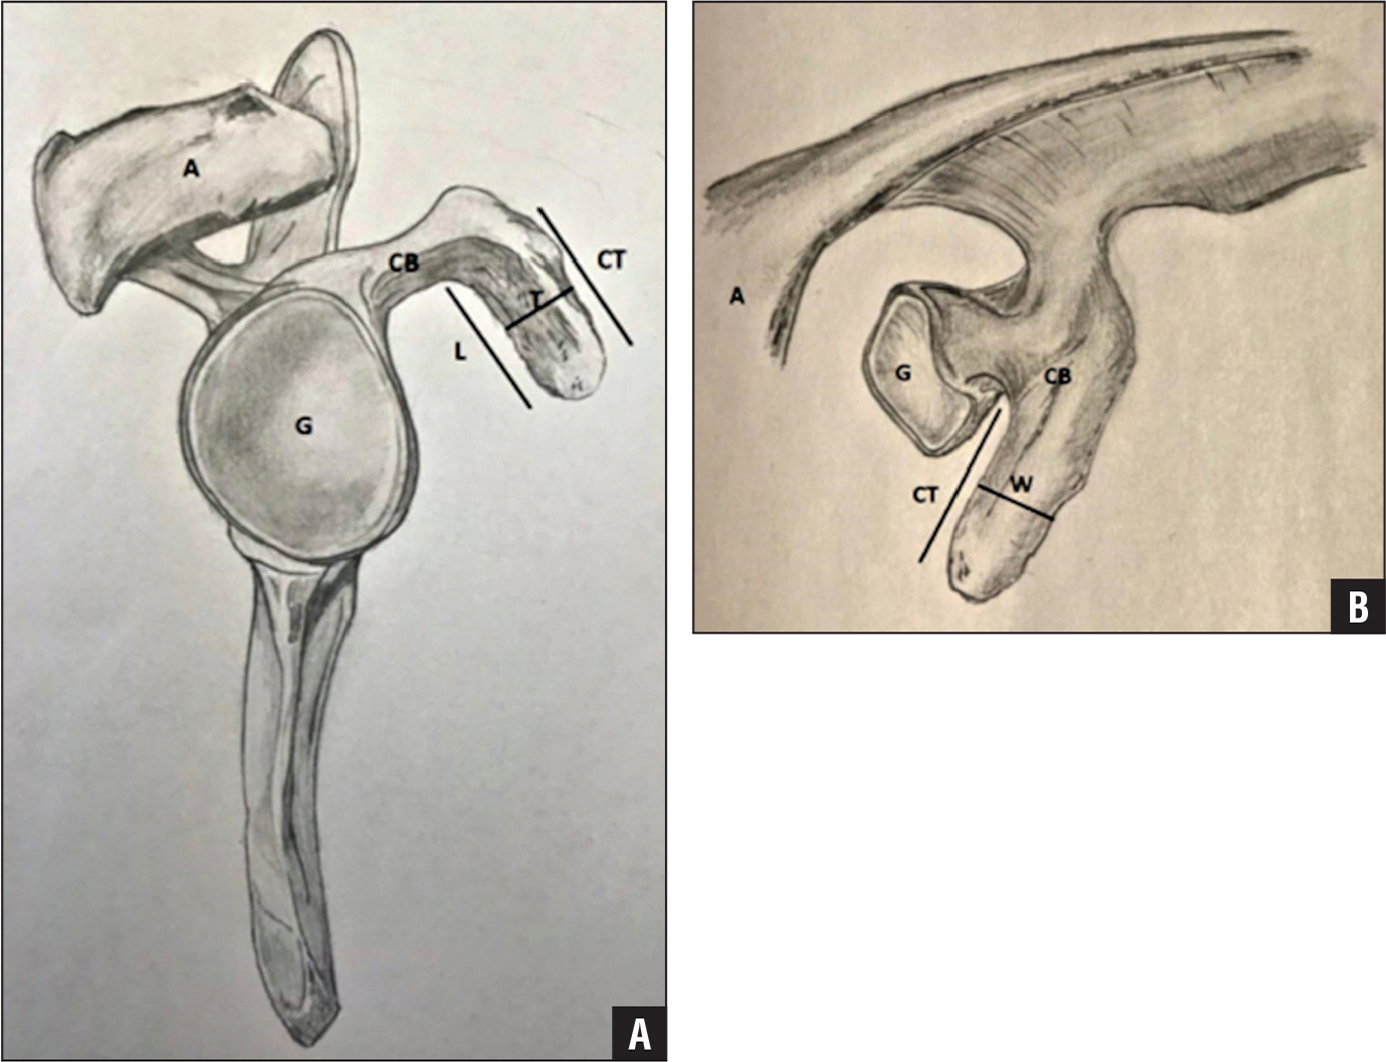 Sagittal view of coracoid tip dimensions (A). Axial view of coracoid tip dimensions (B). Abbreviations: A, acromion; CB, coracoid base; CT, coracoid tip; G, glenoid; L, length; T, thickness; W, width.